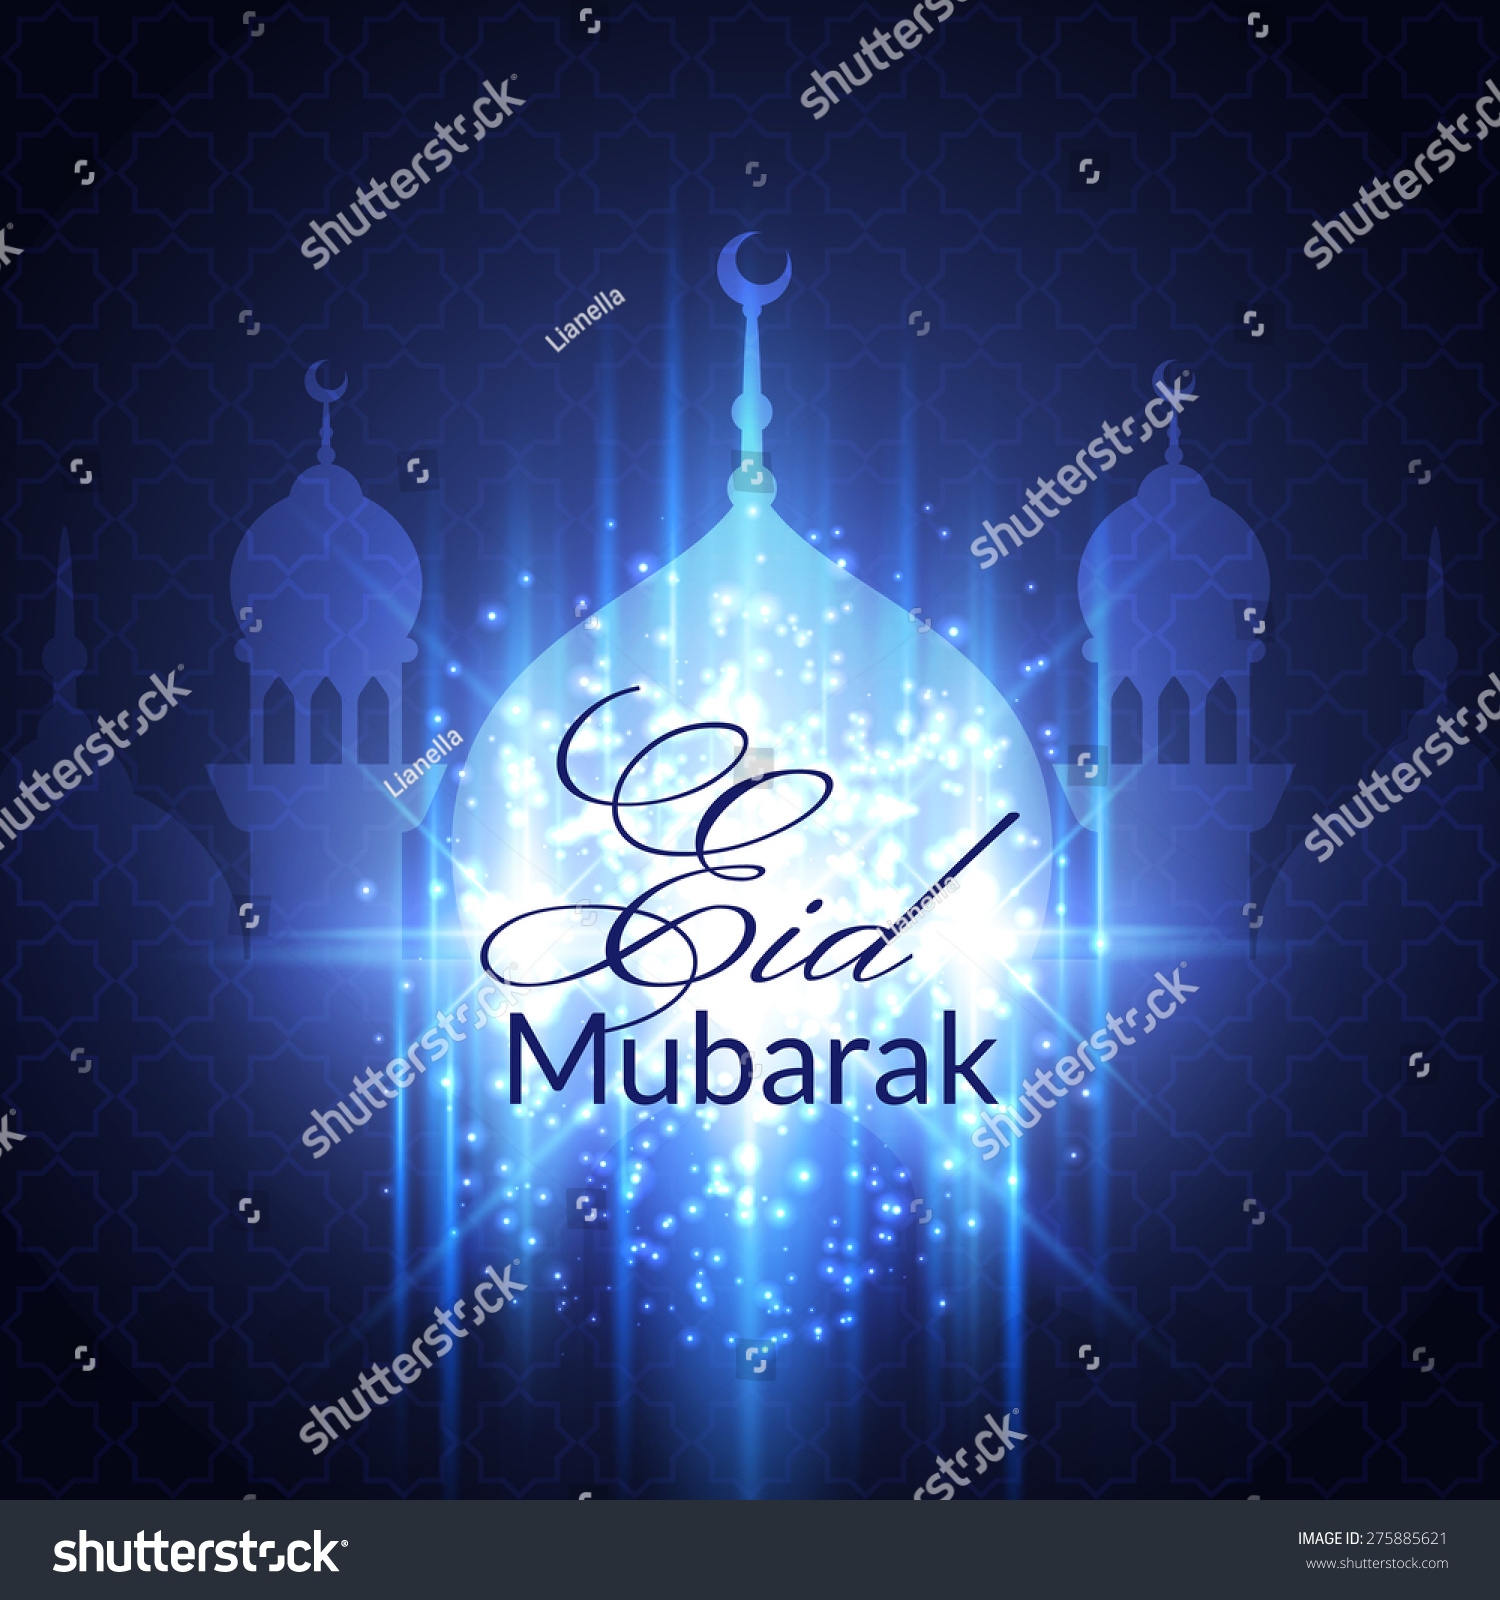 eid mubarak greeting card with mosque and lights vector